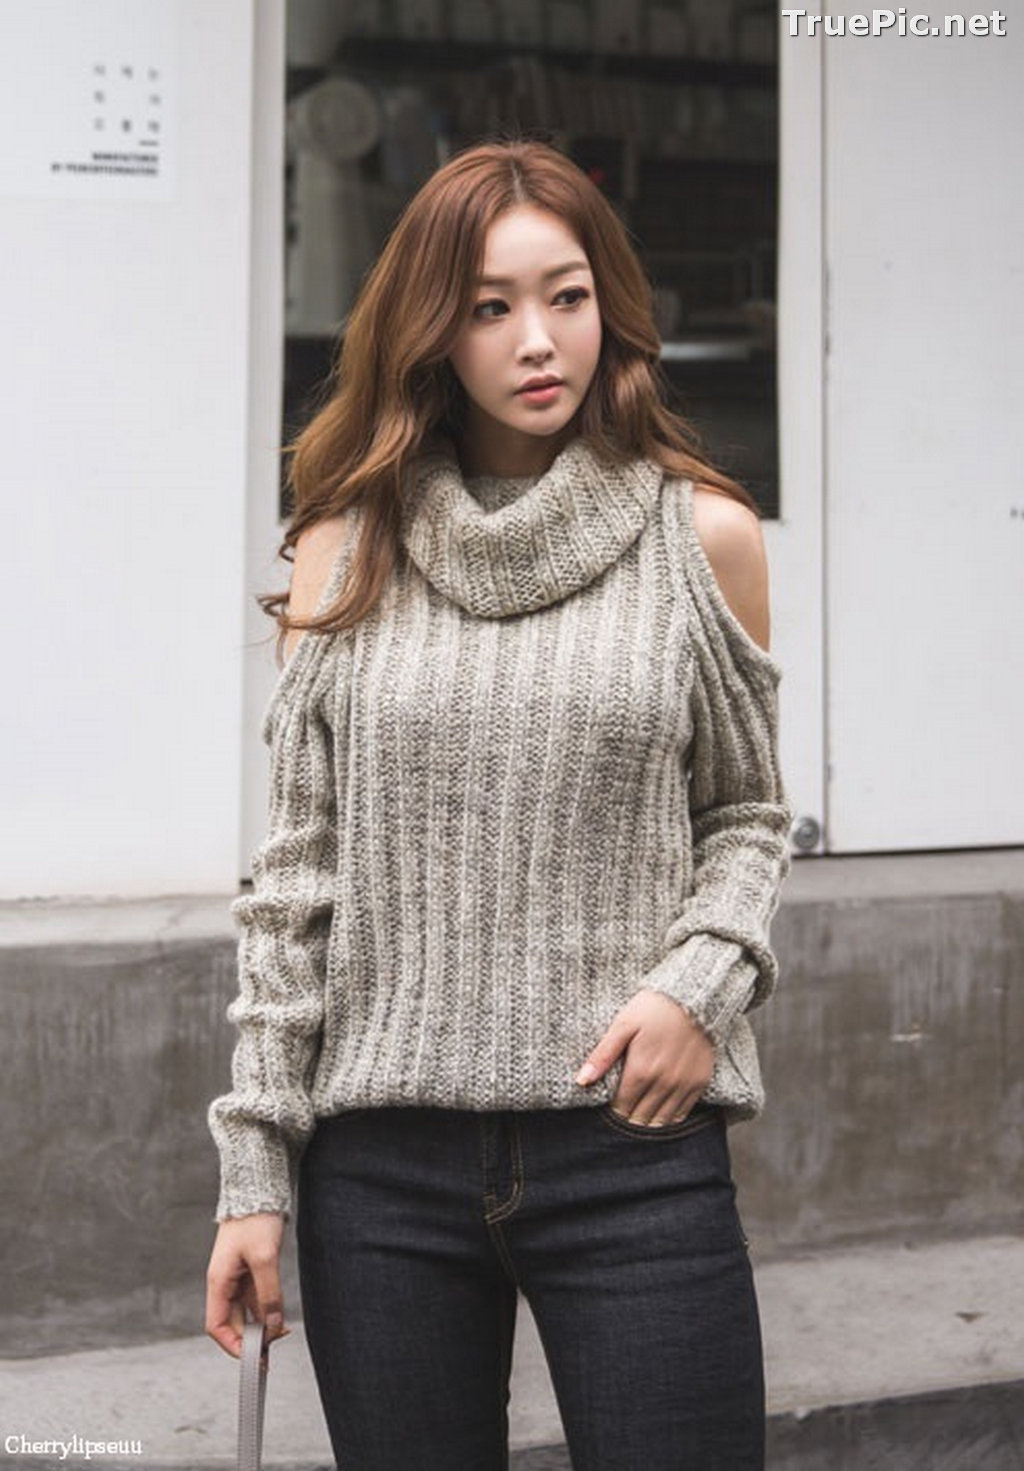 Image Korean Fashion Model - Ji Hyun - Casual Outdoor Collection - TruePic.net - Picture-1